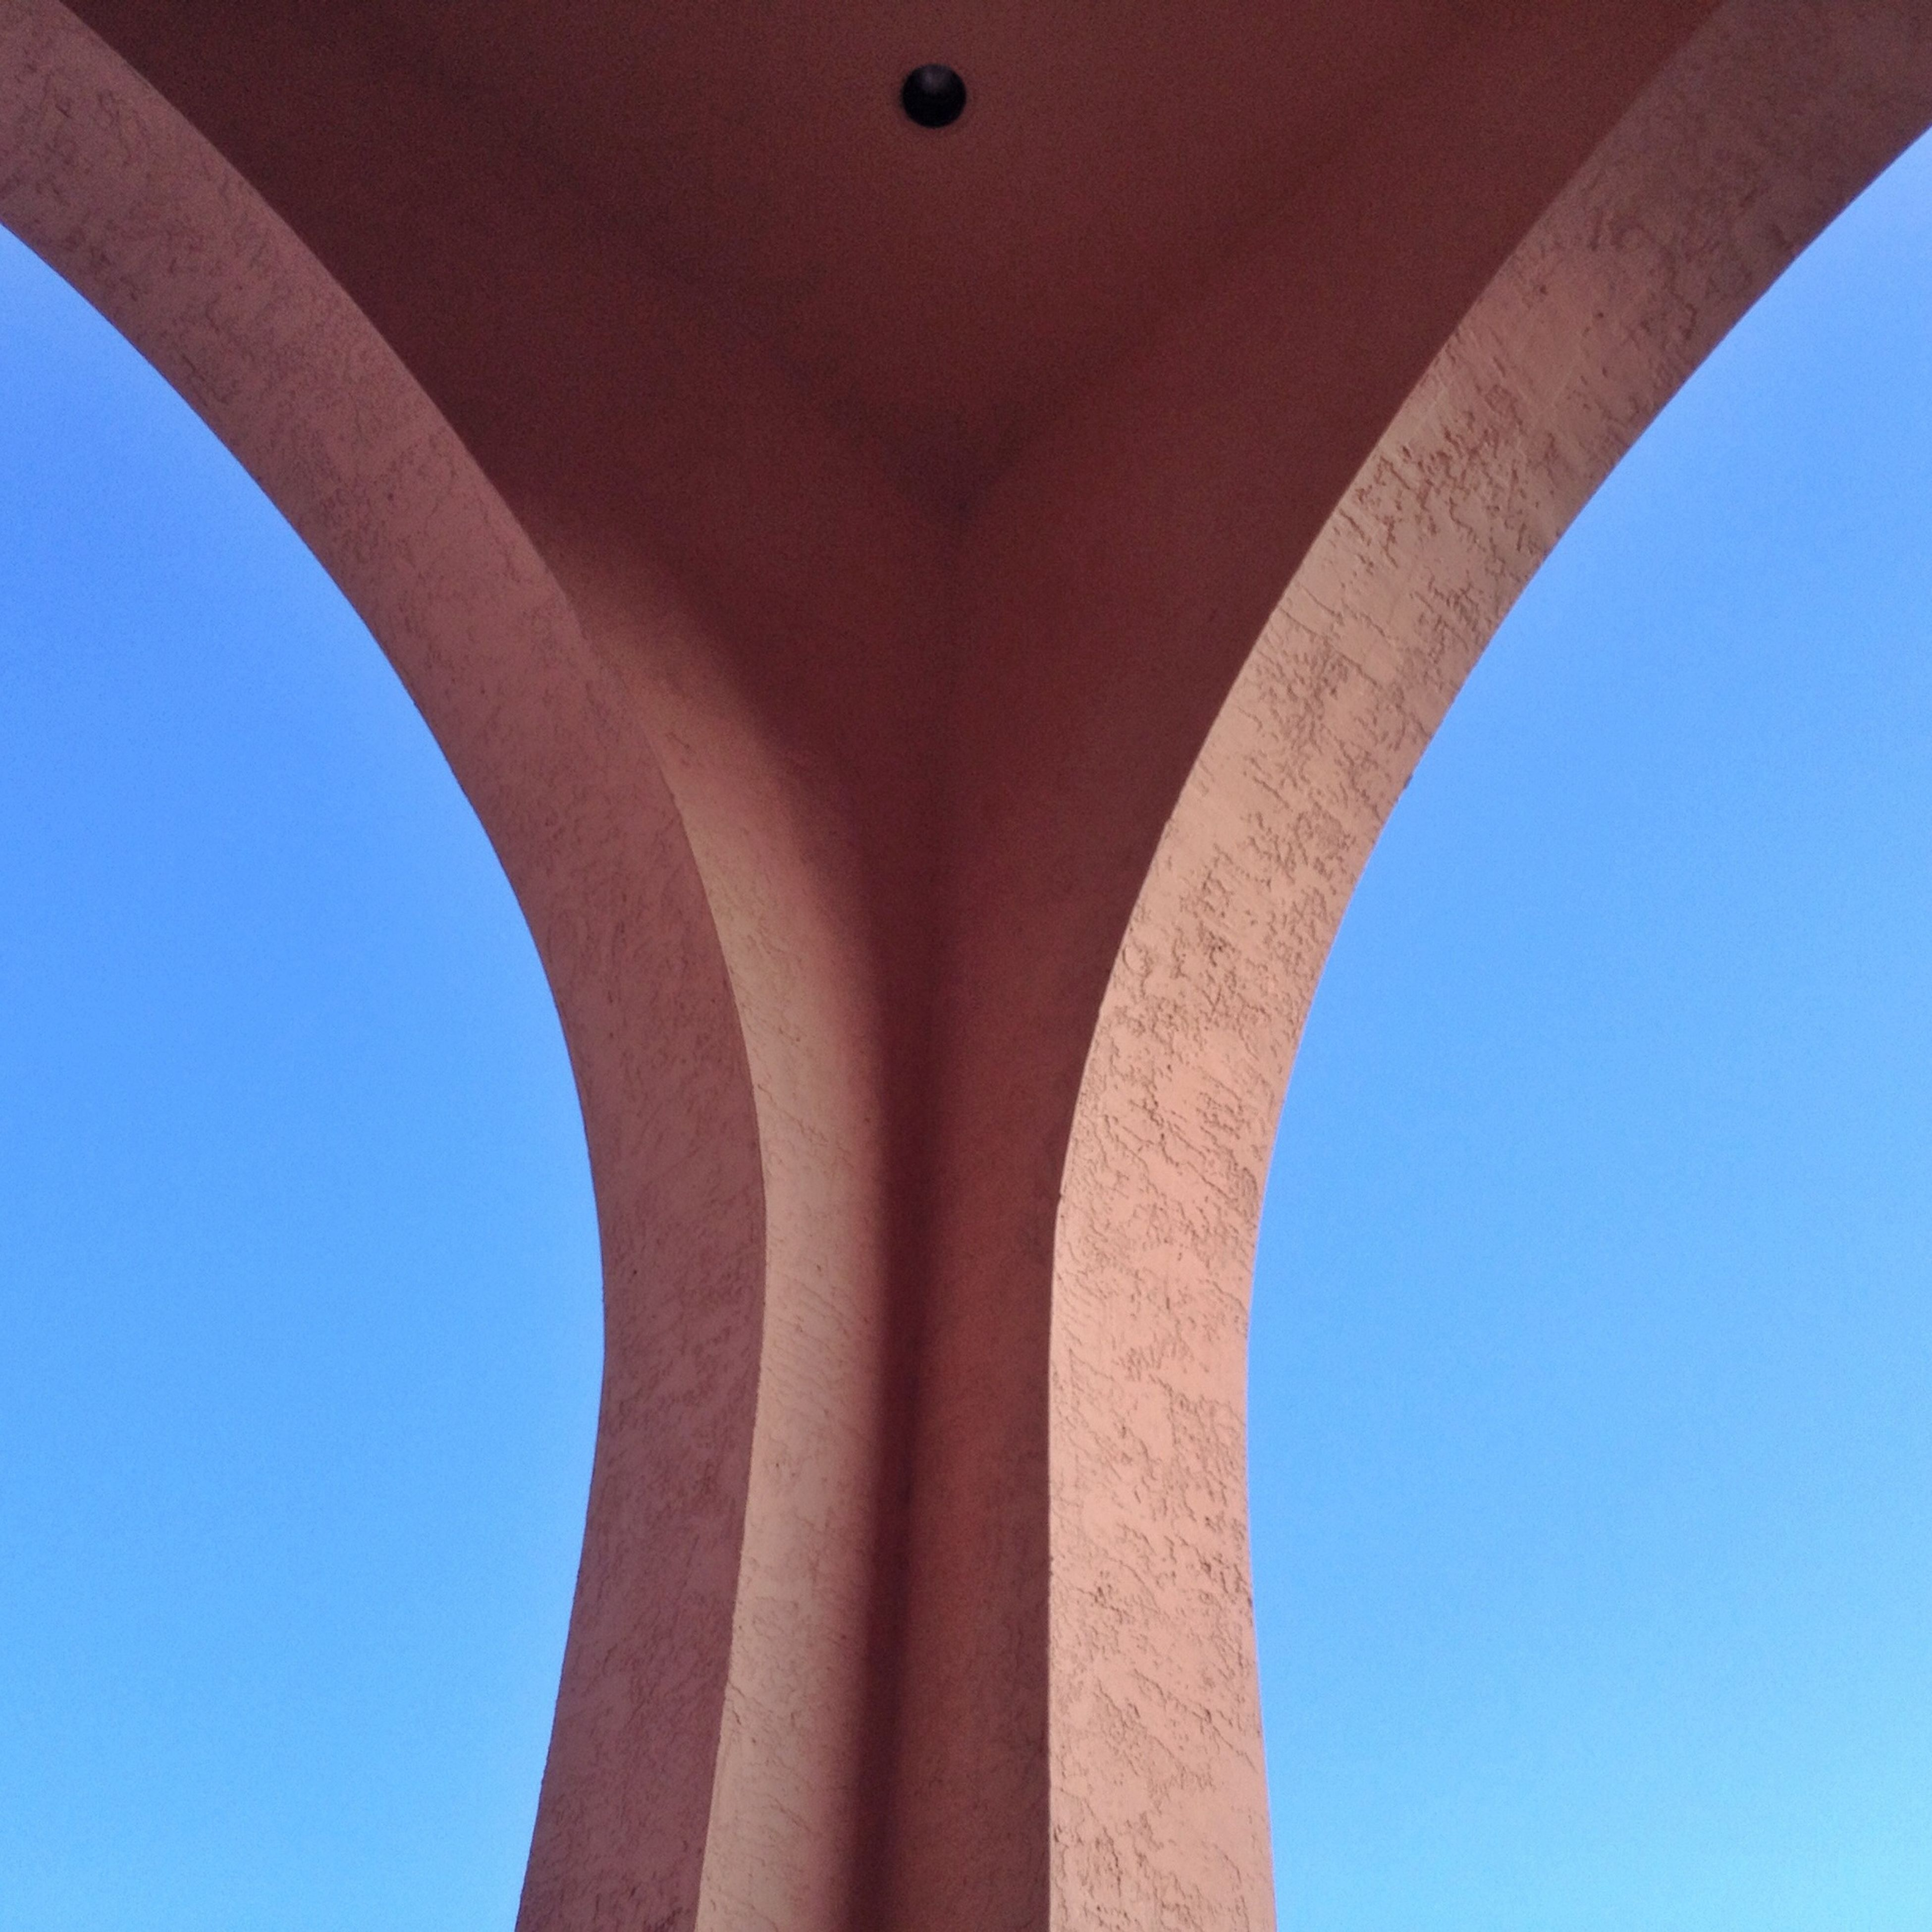 architecture, low angle view, built structure, clear sky, arch, blue, architectural column, column, day, sky, sunlight, architectural feature, no people, building exterior, part of, copy space, directly below, connection, outdoors